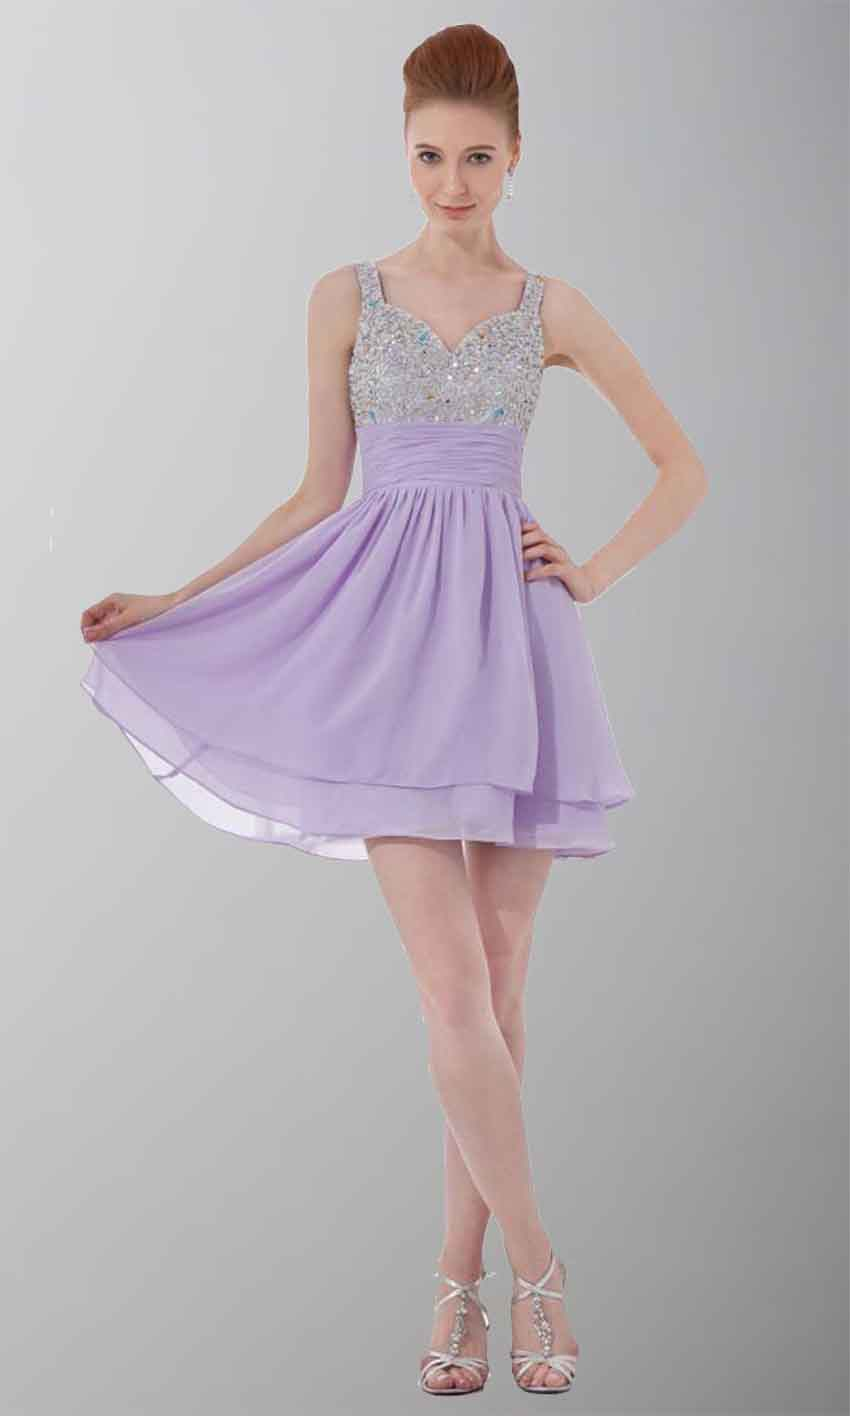 Short Straps Sequin Bodice Purple Cocktail Dresses KSP321 [KSP321] - £87.00 : Cheap Prom Dresses Uk, Bridesmaid Dresses, 2014 Prom & Evening Dresses, Look for cheap elegant prom dresses 2014, cocktail gowns, or dresses for special occasions? kissprom.co.uk offers various bridesmaid dresses, evening dress, free shipping to UK etc.